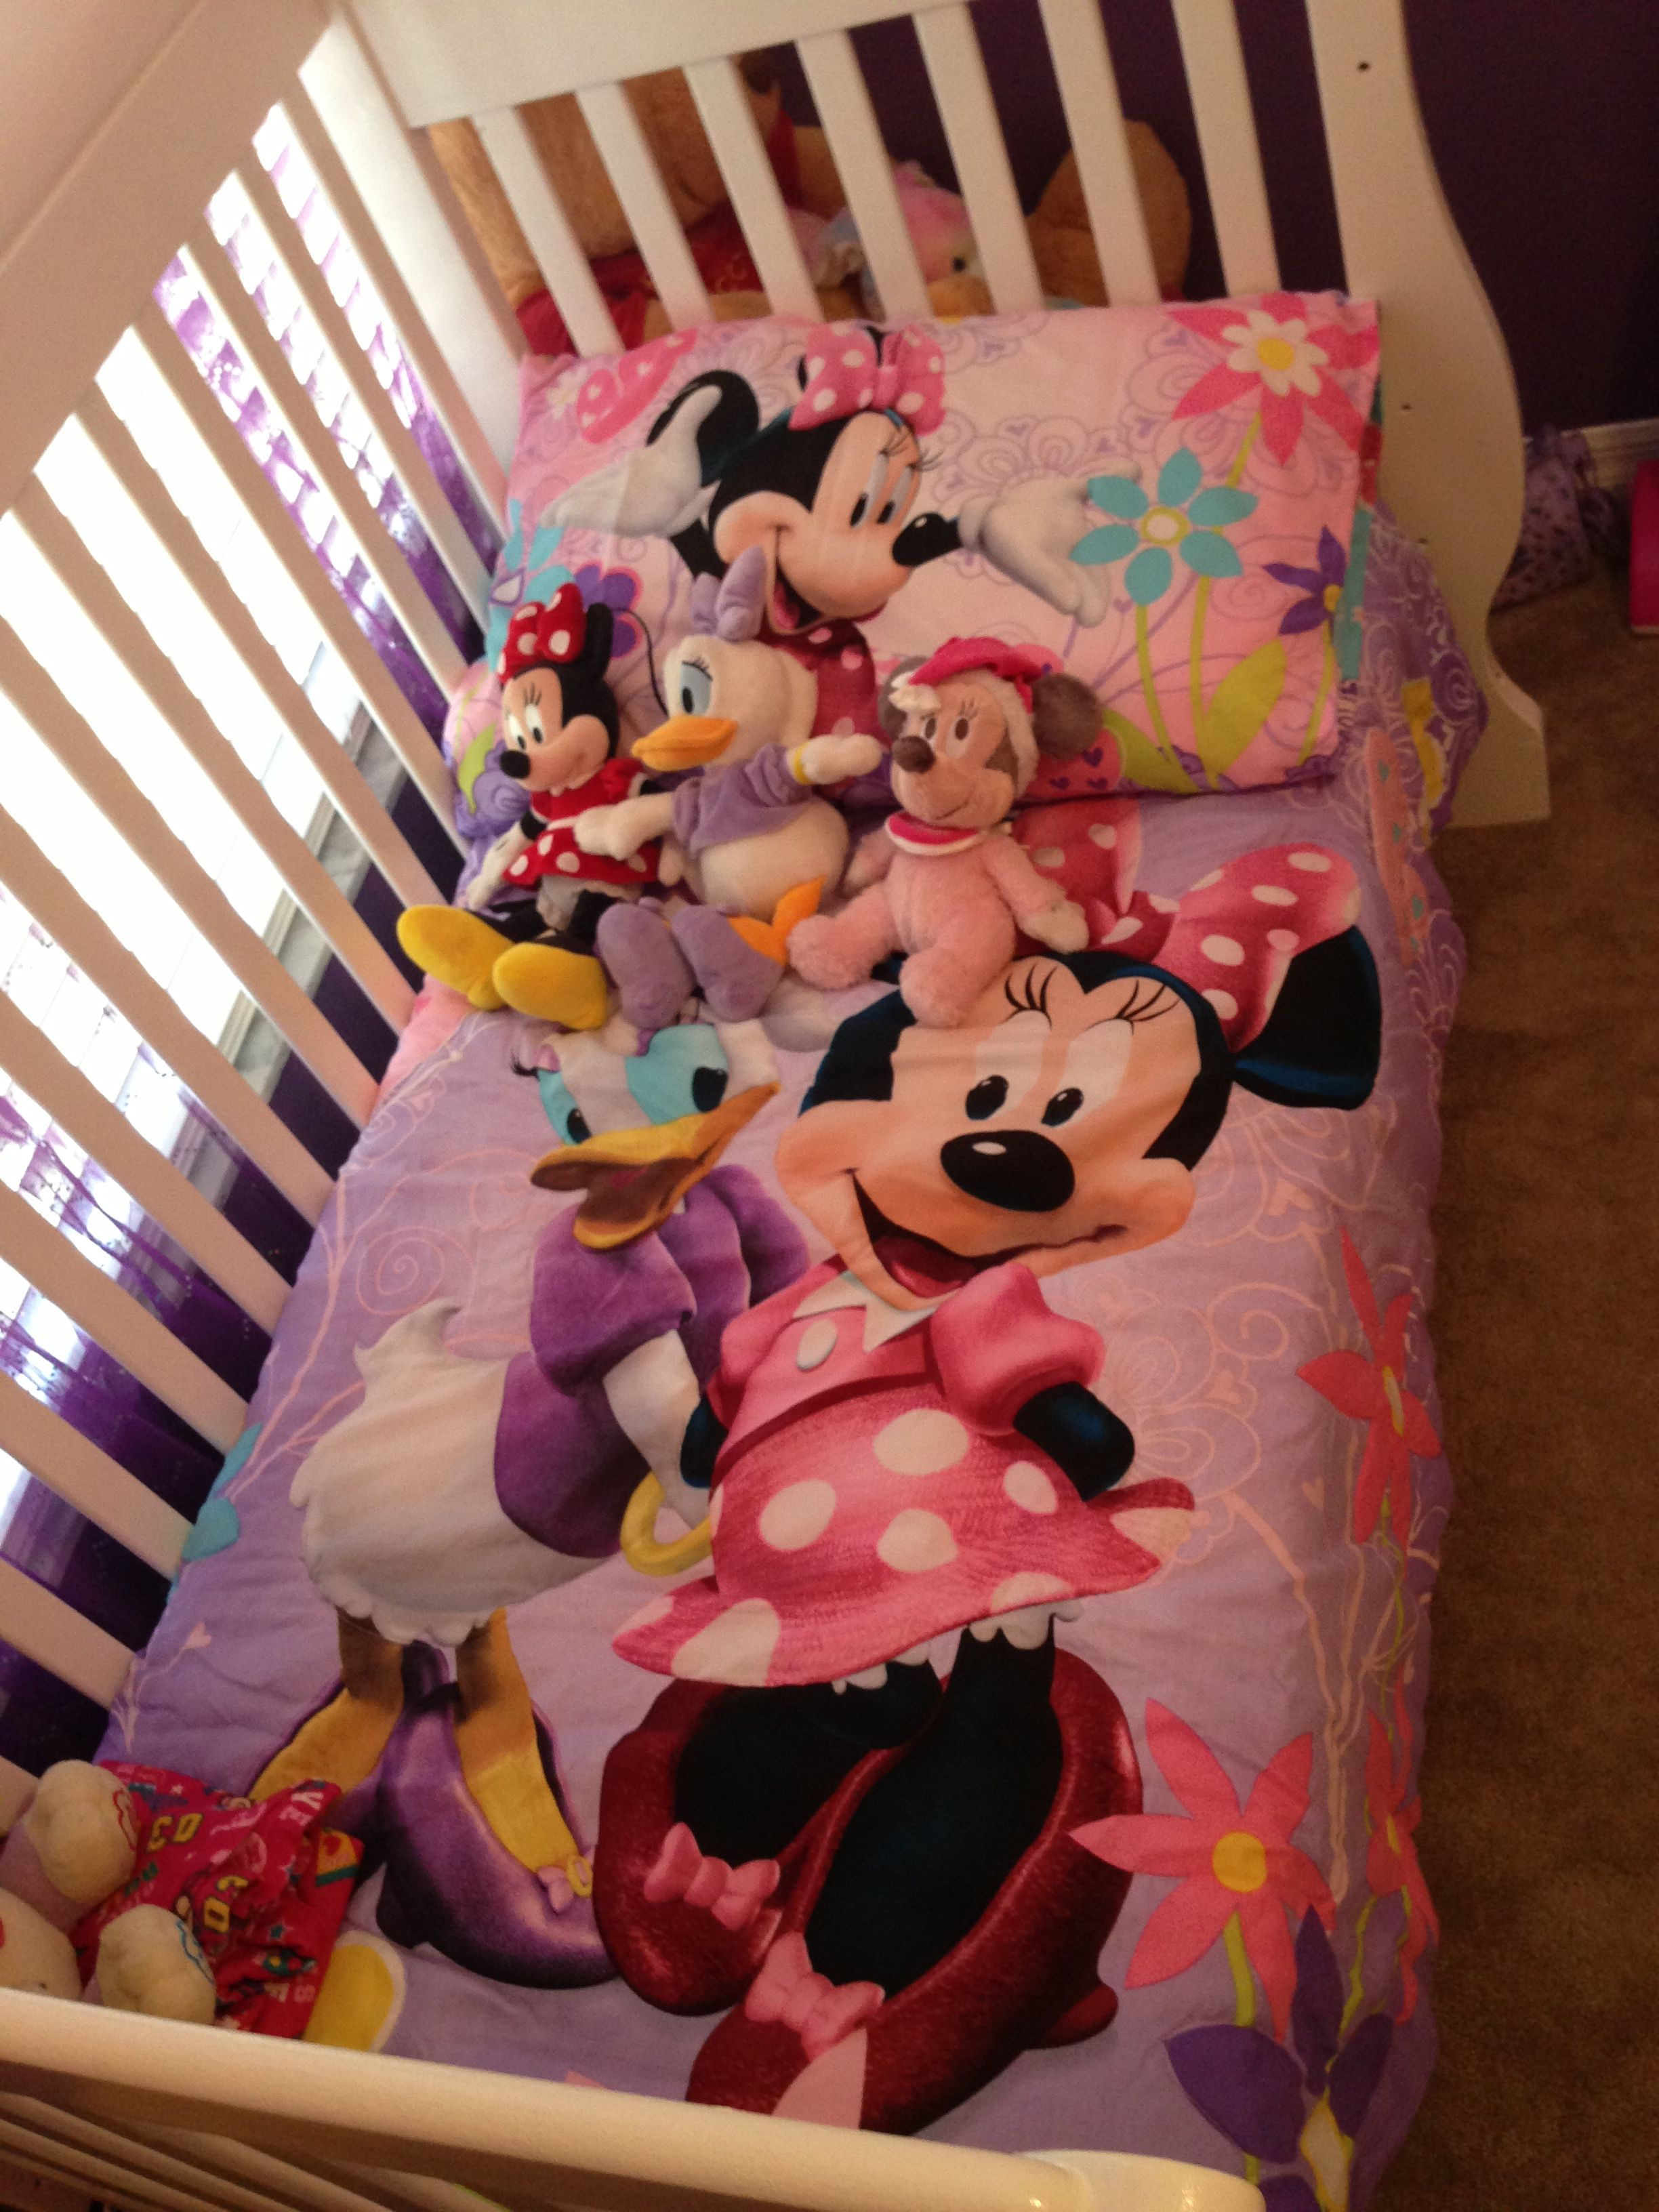 Toddler Bedding Set Minnie Mouse Bow Tique W Daisy Duck Too Cute